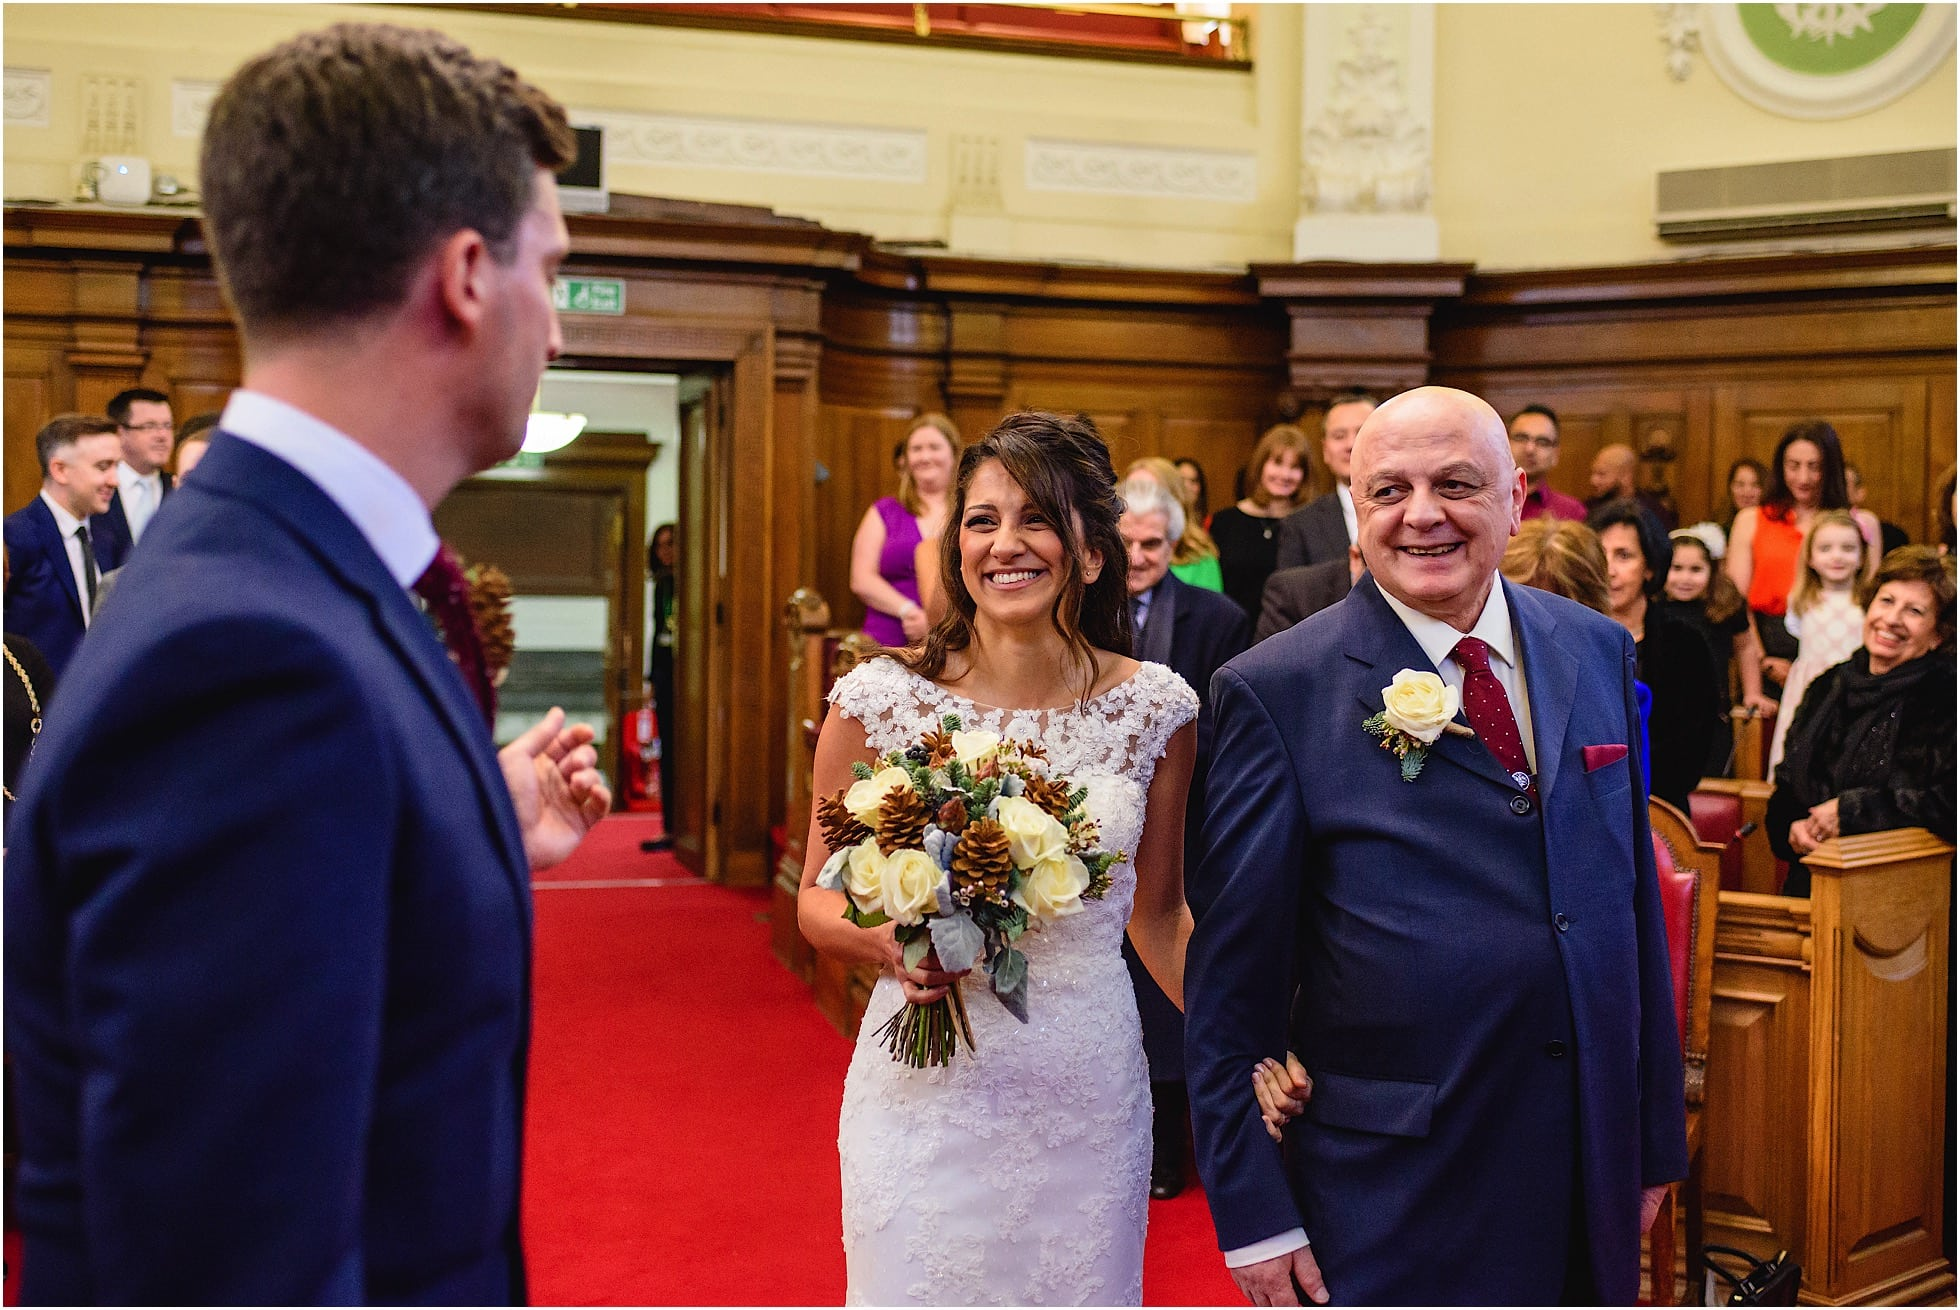 beaming bride and father of the bride at islington town hall